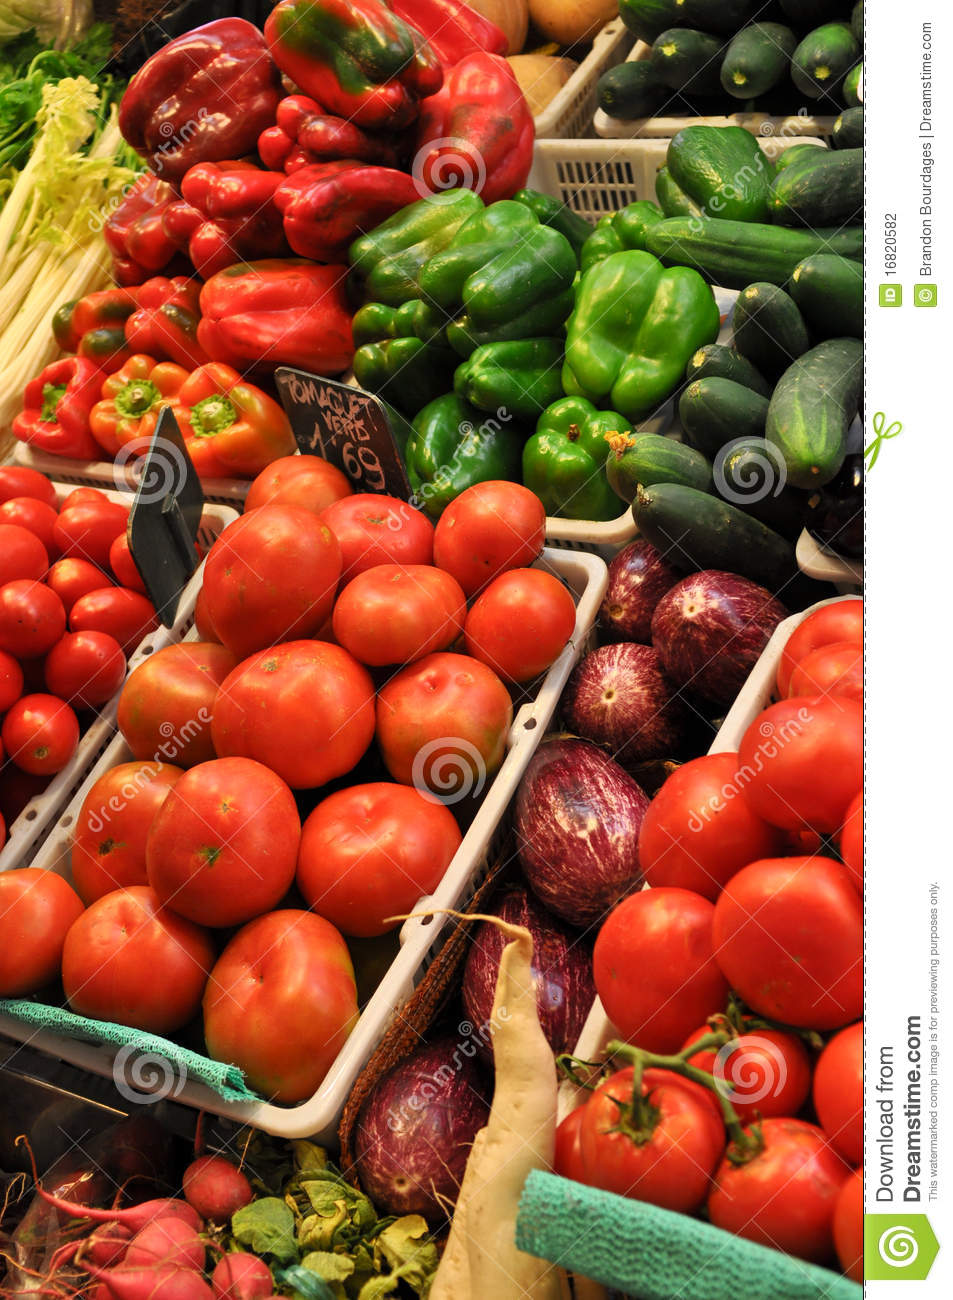 Fresh Produce For Sale at Market